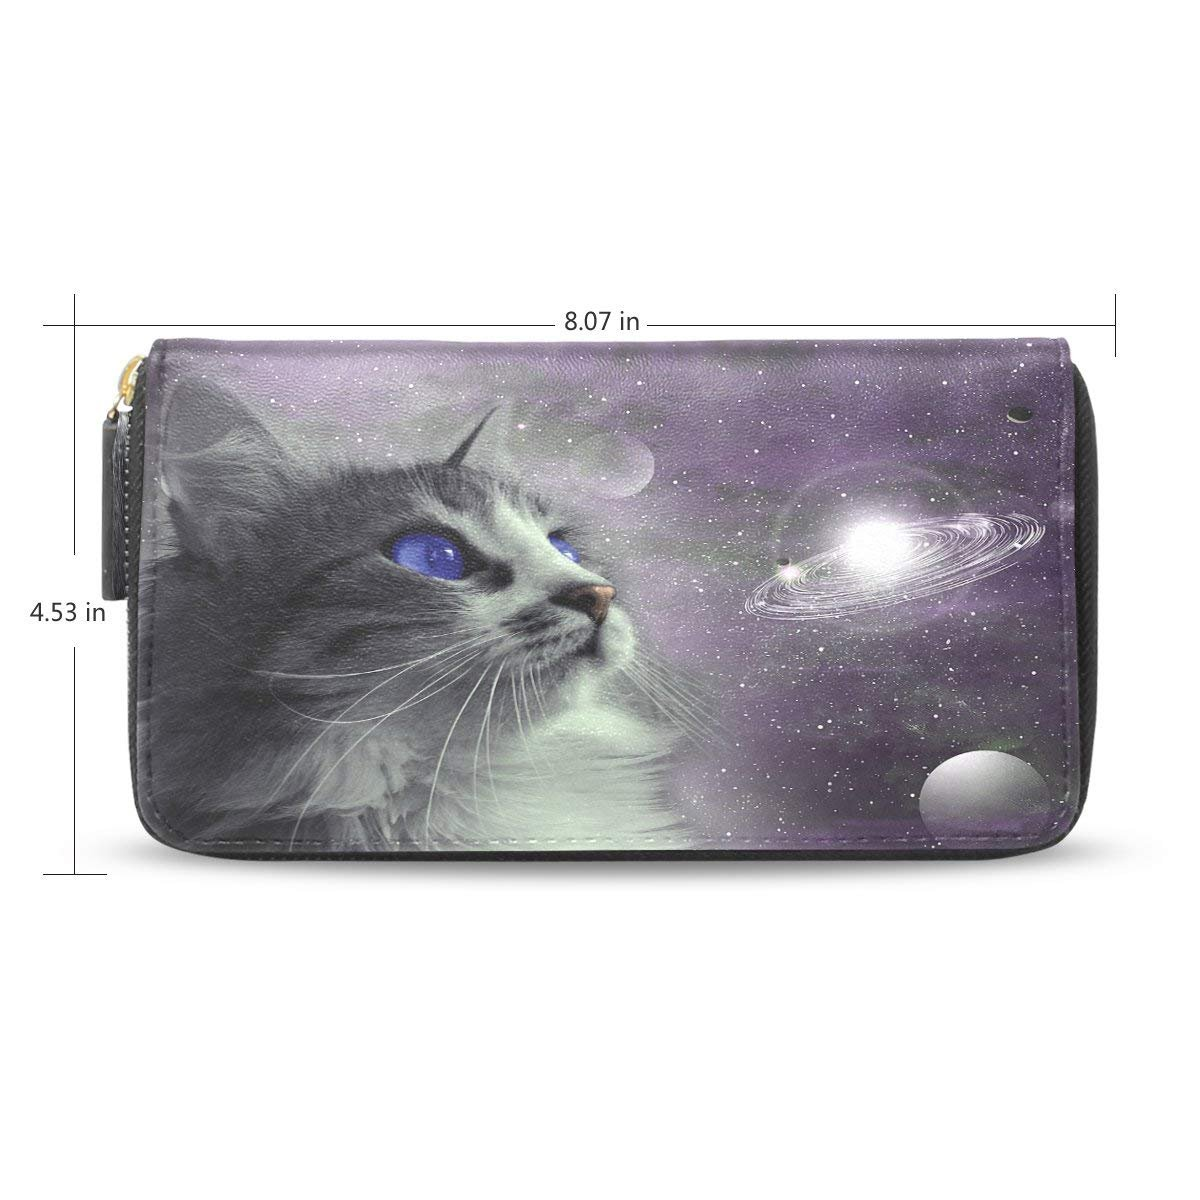 Space Cat Passport Long Wallets Business Card Case Holder Clutch Purse Handbag